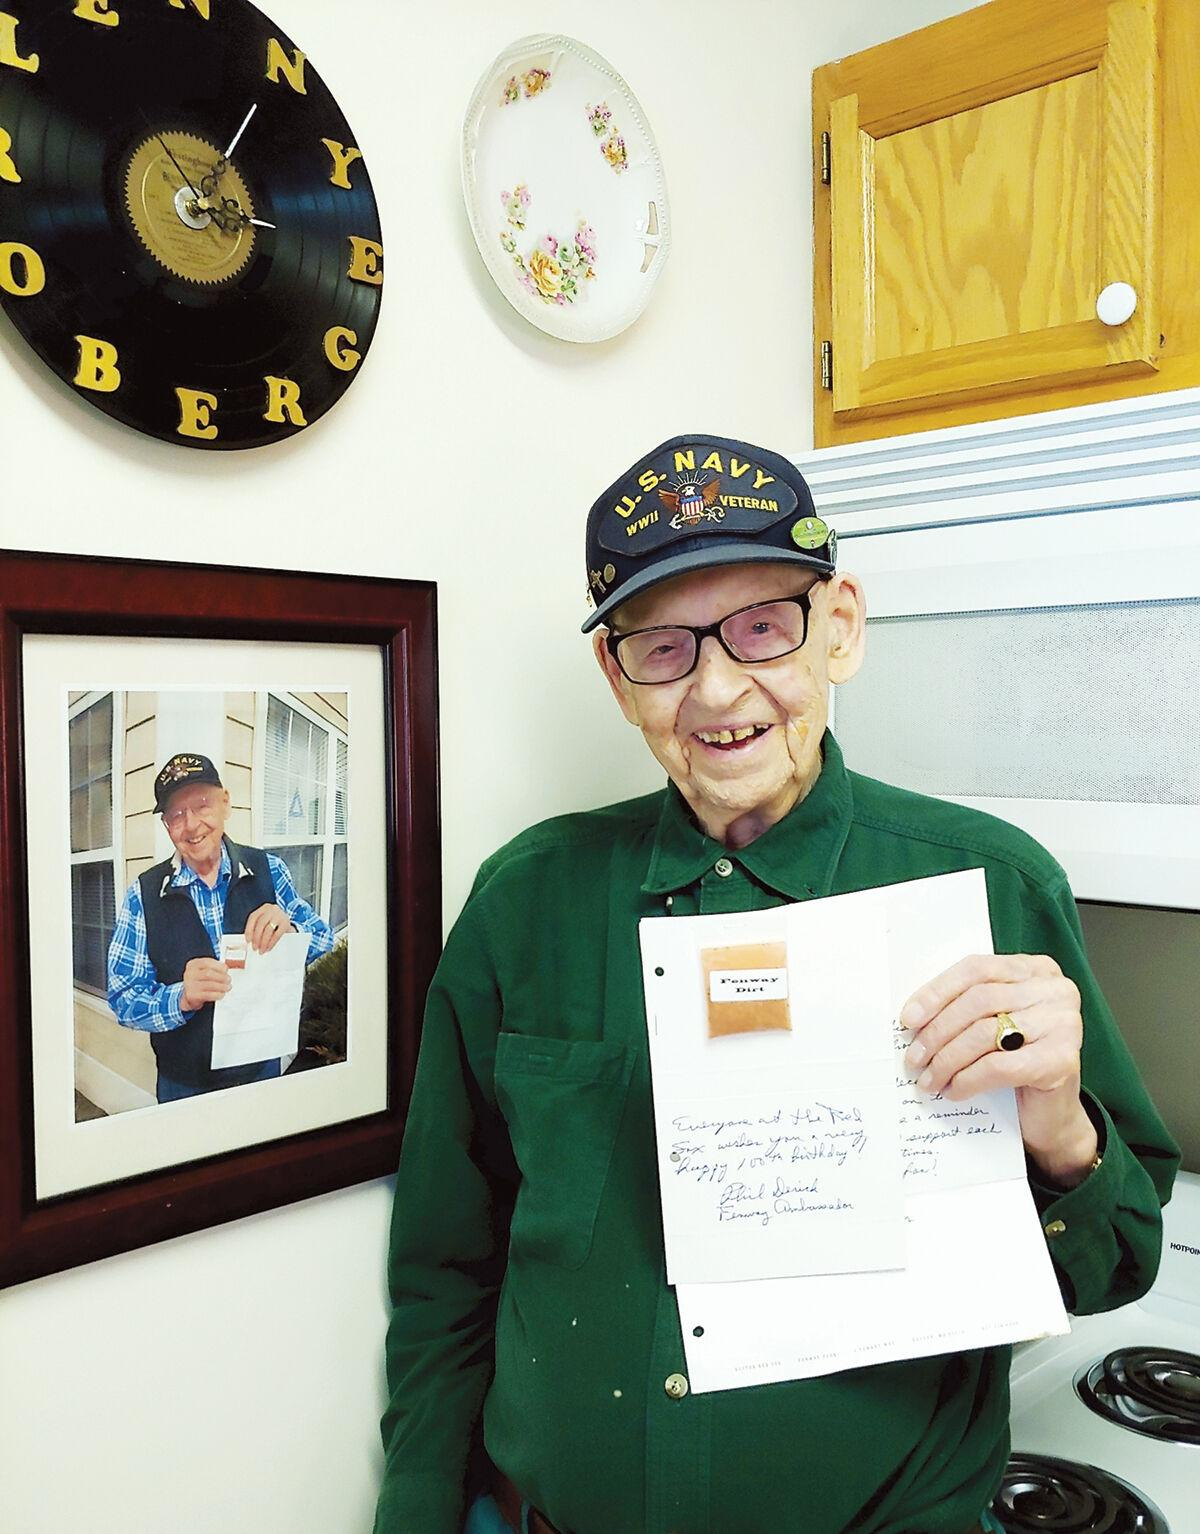 Lenny Roberge will celebrate his 107th birthday June 12